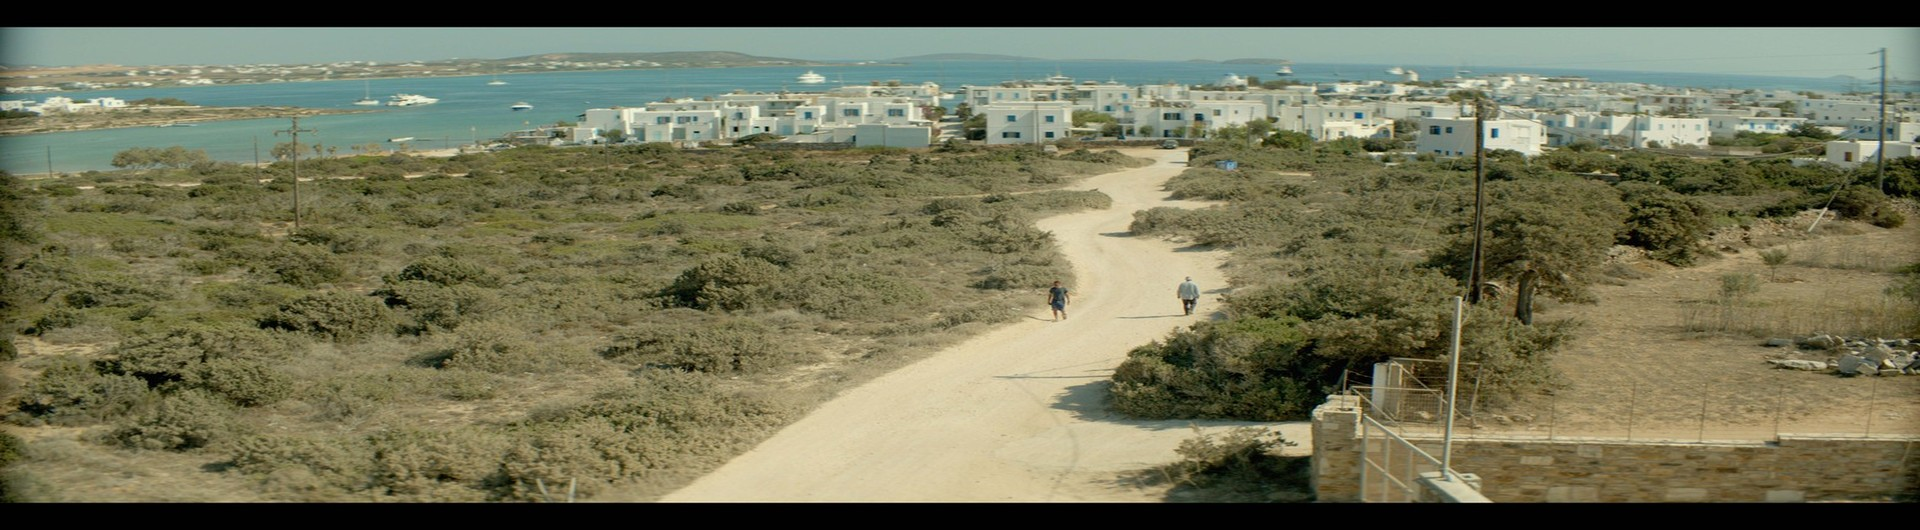 Greece a finalist for European Film Location Award!